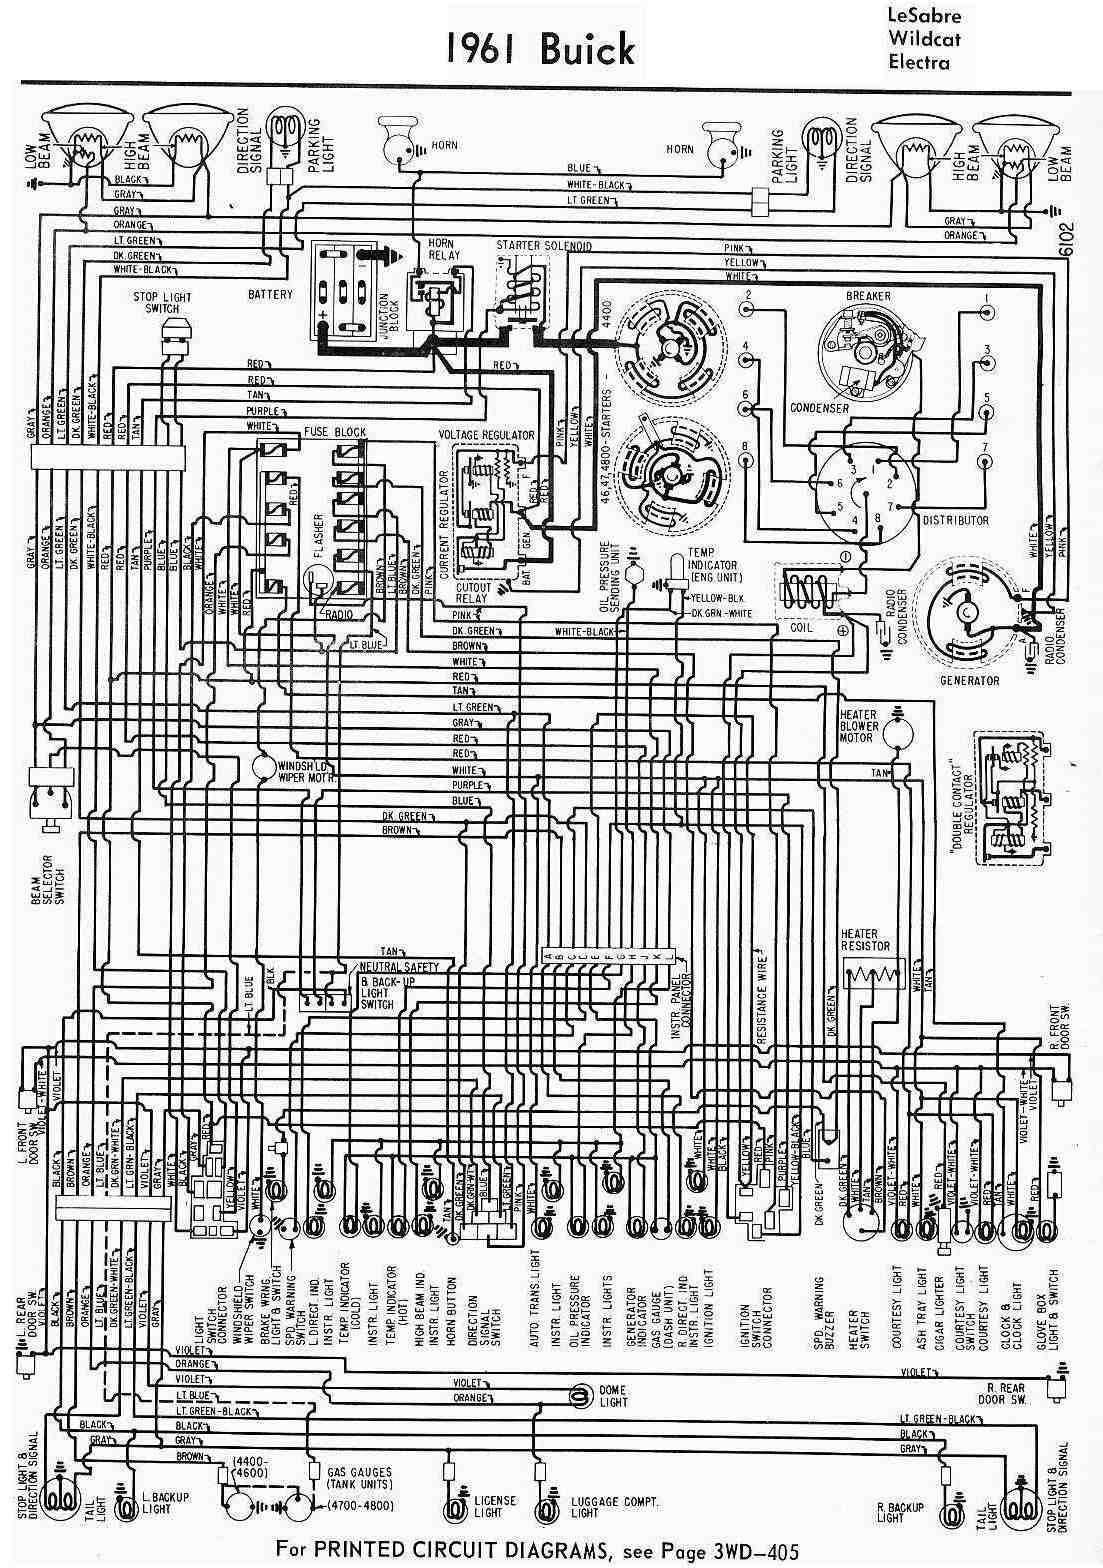 1996 ford ranger ford truck wiring diagrams december 2011 all about wiring diagrams ford truck wiring diagrams fuel #2